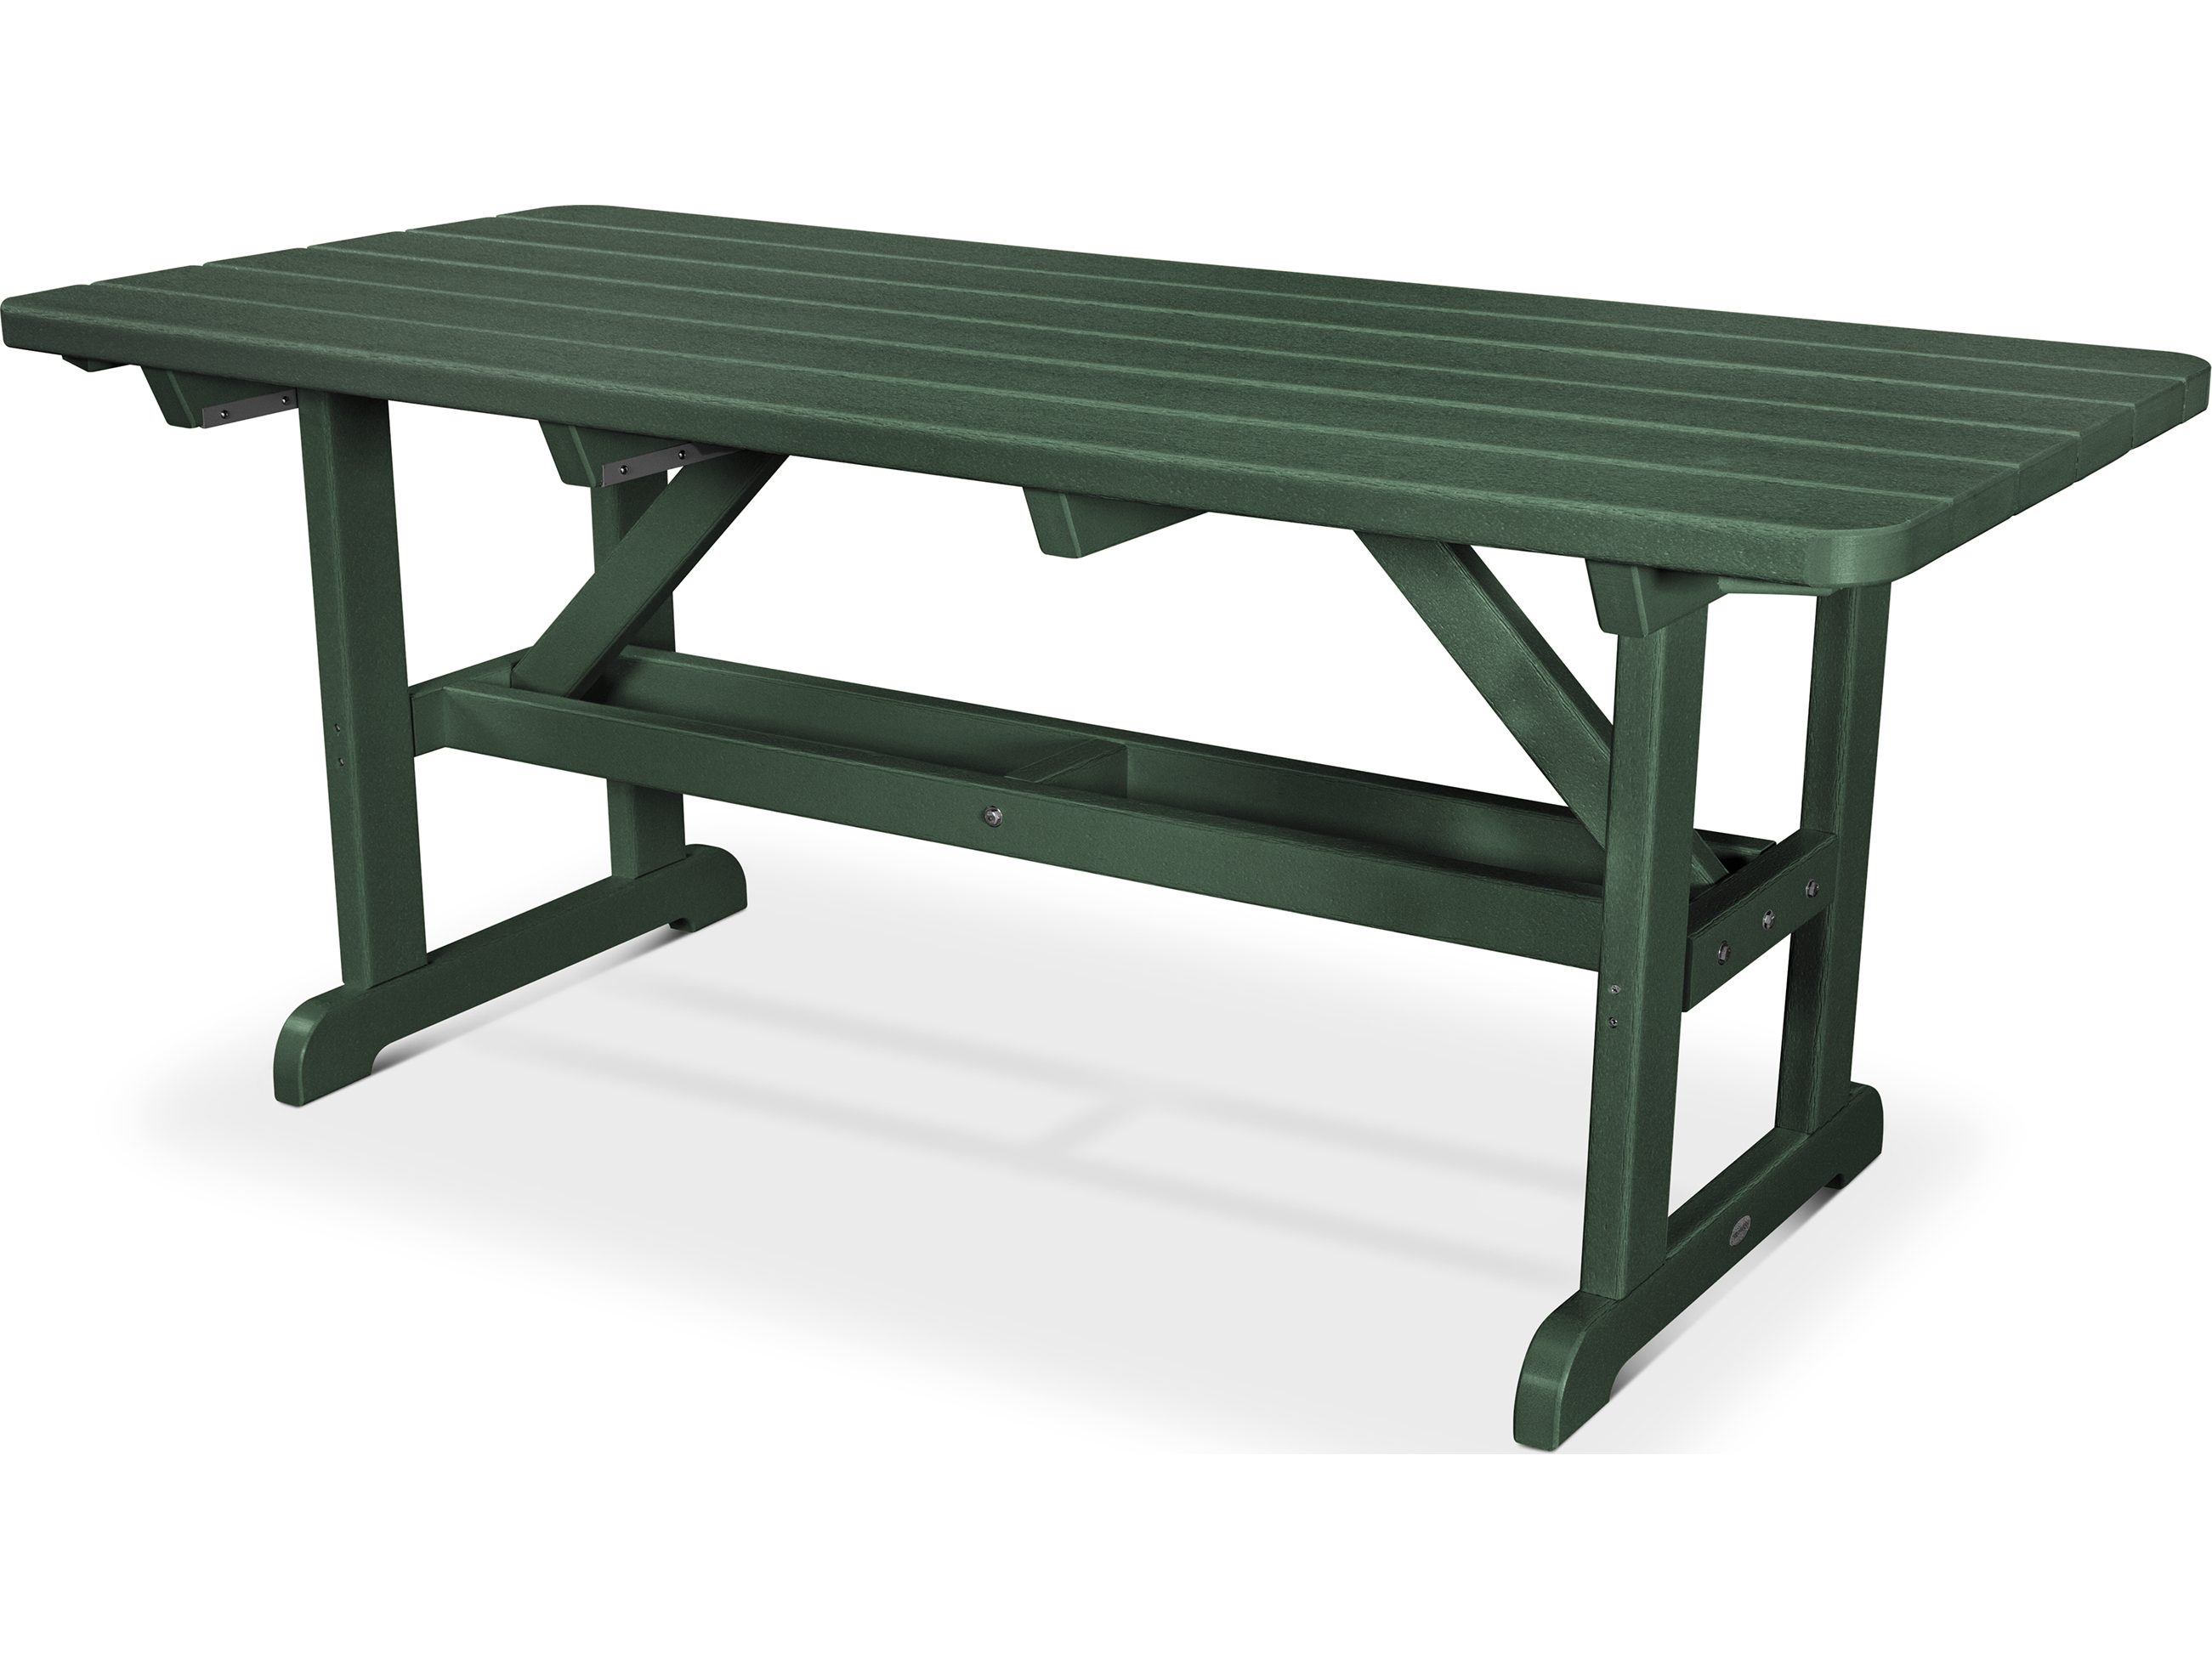 Plastic Picnic Table : ... ® Park Recycled Plastic 72 x 36 Rectangular Picnic Table  PT3672